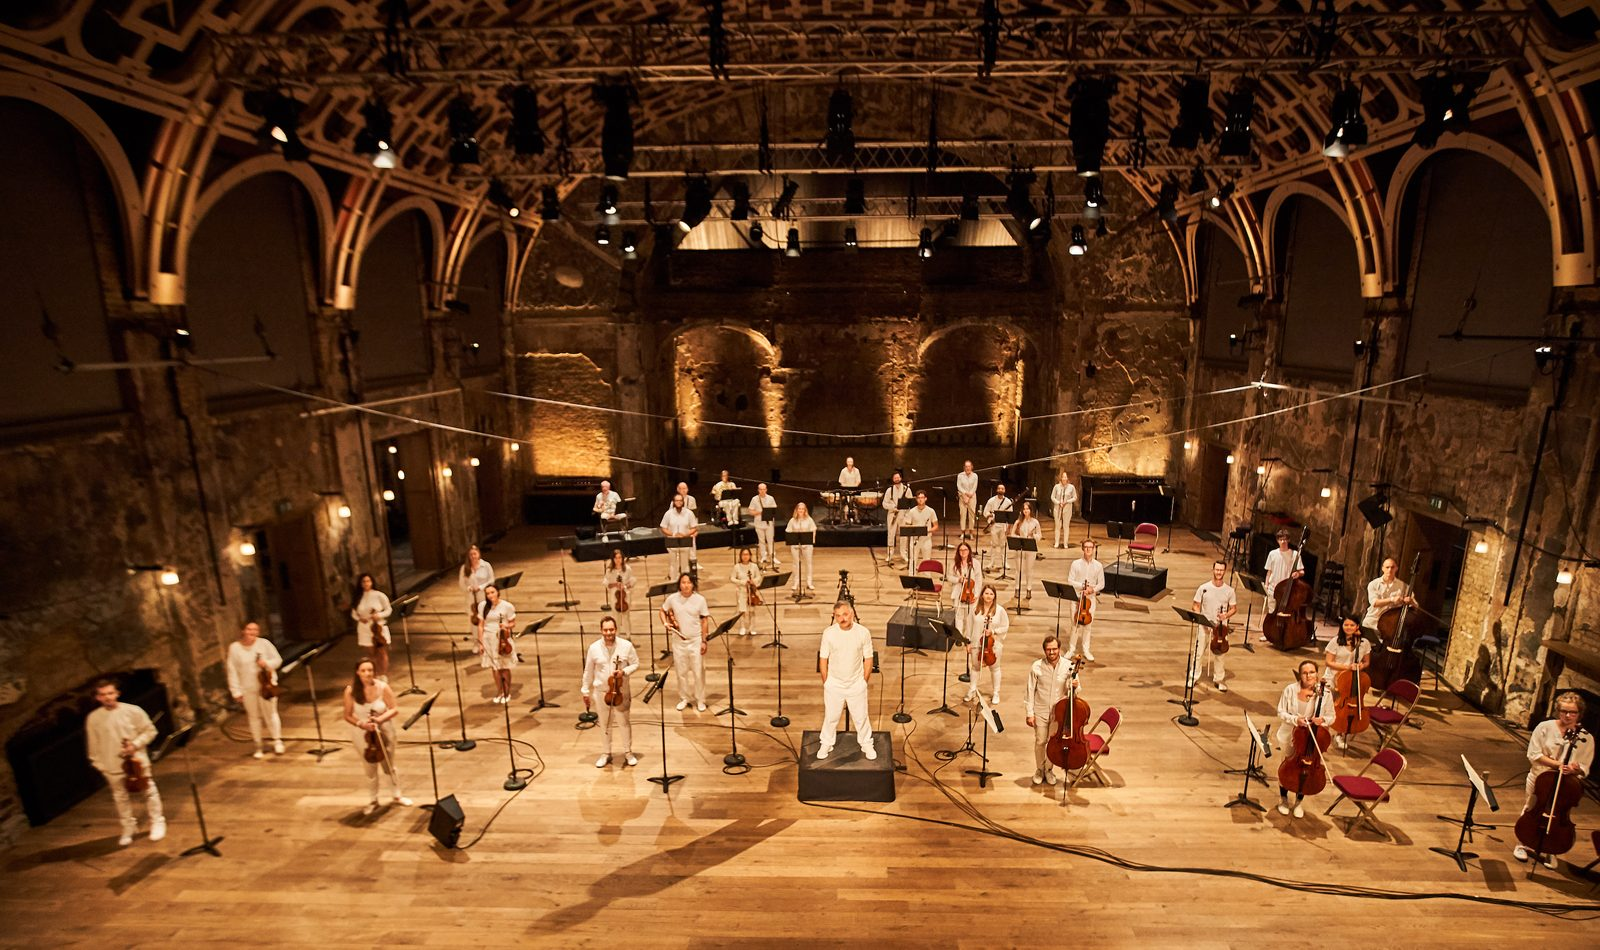 An orchestra in white spread aout across the floor of a arched hall